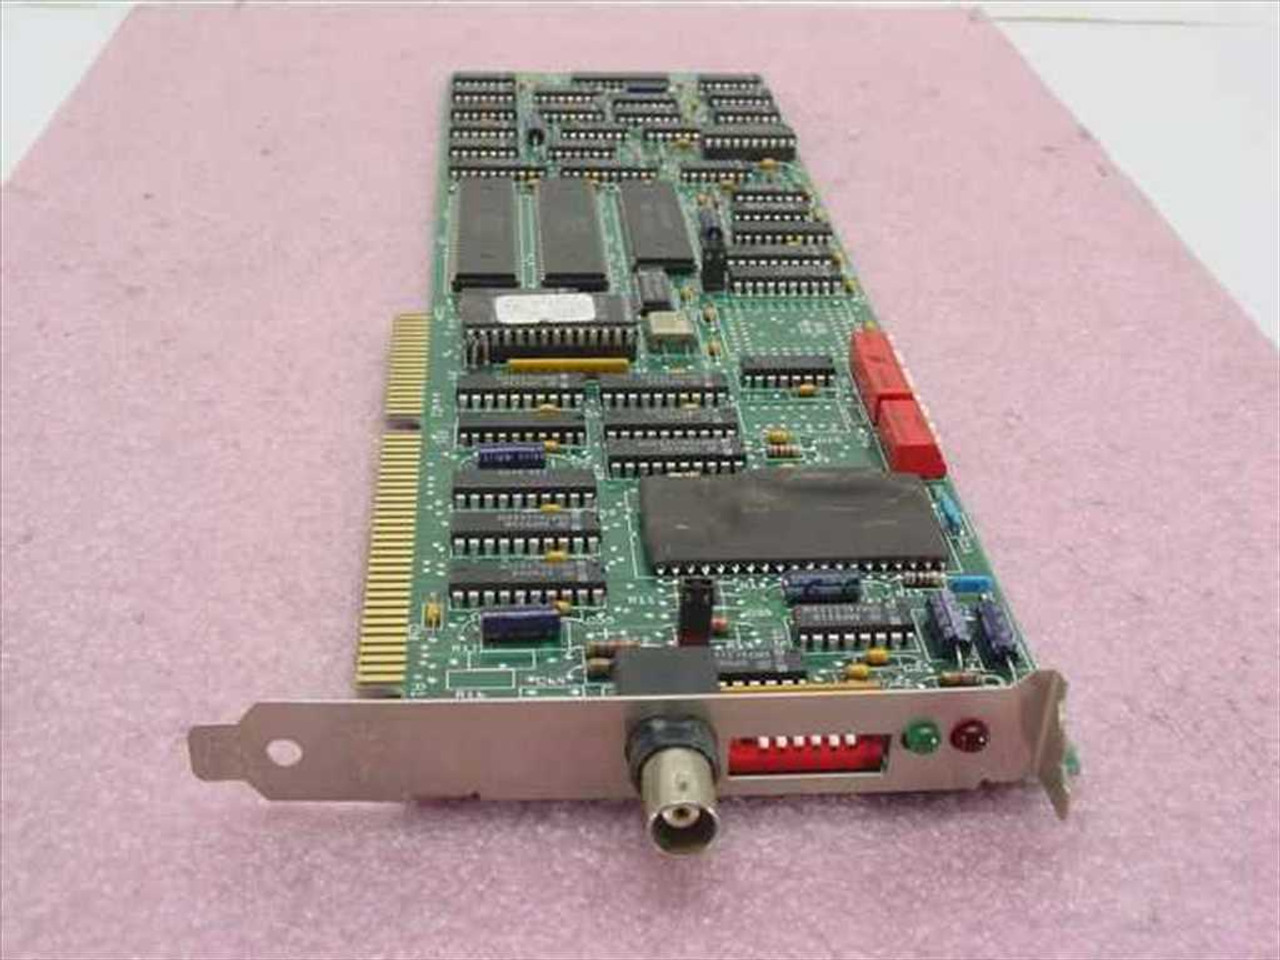 Isa networks inc - Standard Microsystems Corp Arcnet Pc 500ws 16 Bit Isa Network Card